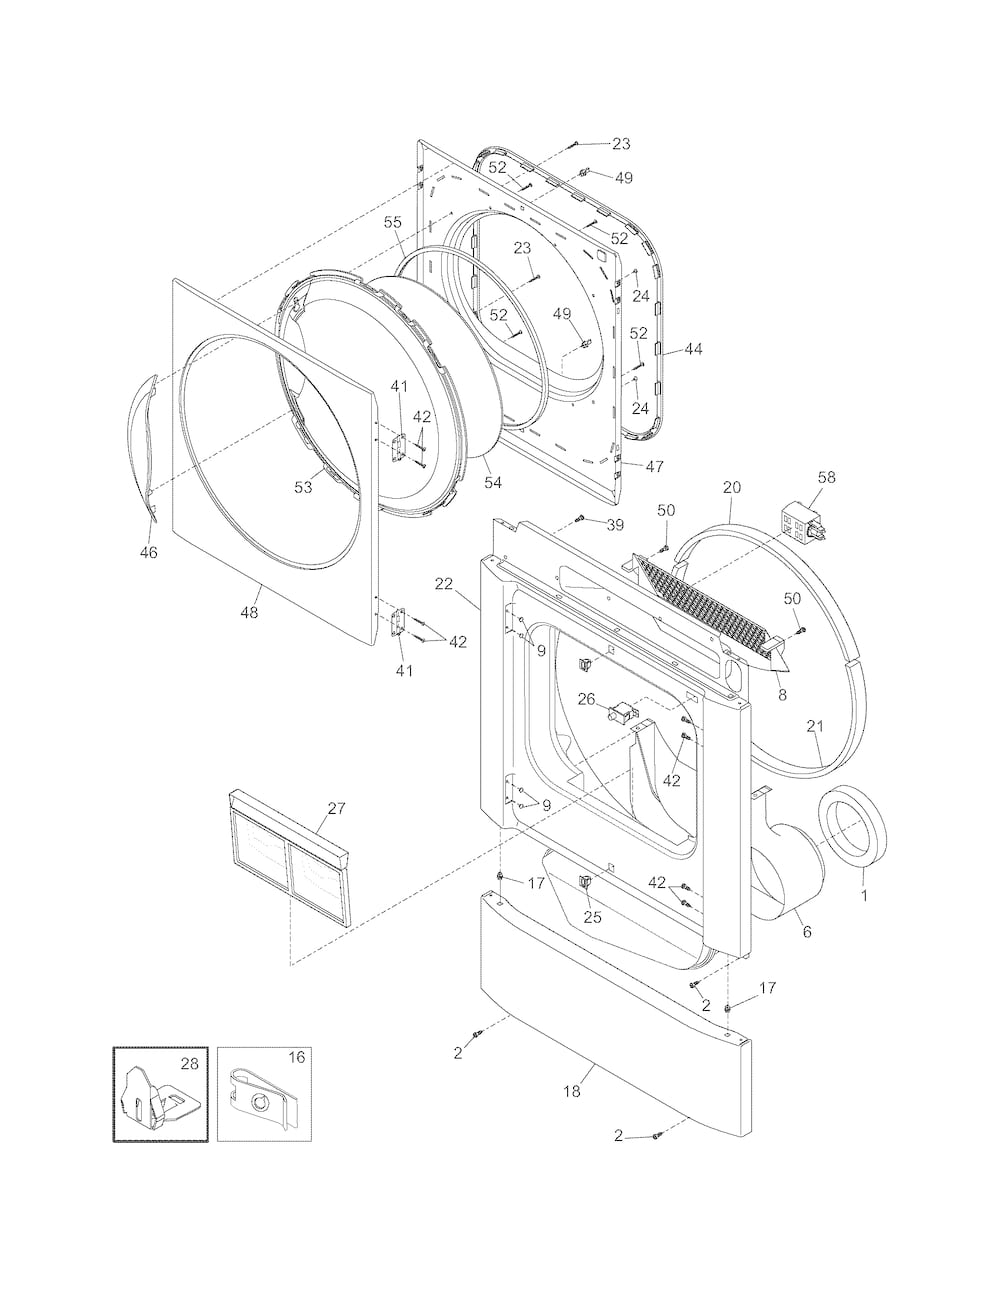 sears kenmore dryer wiring diagram